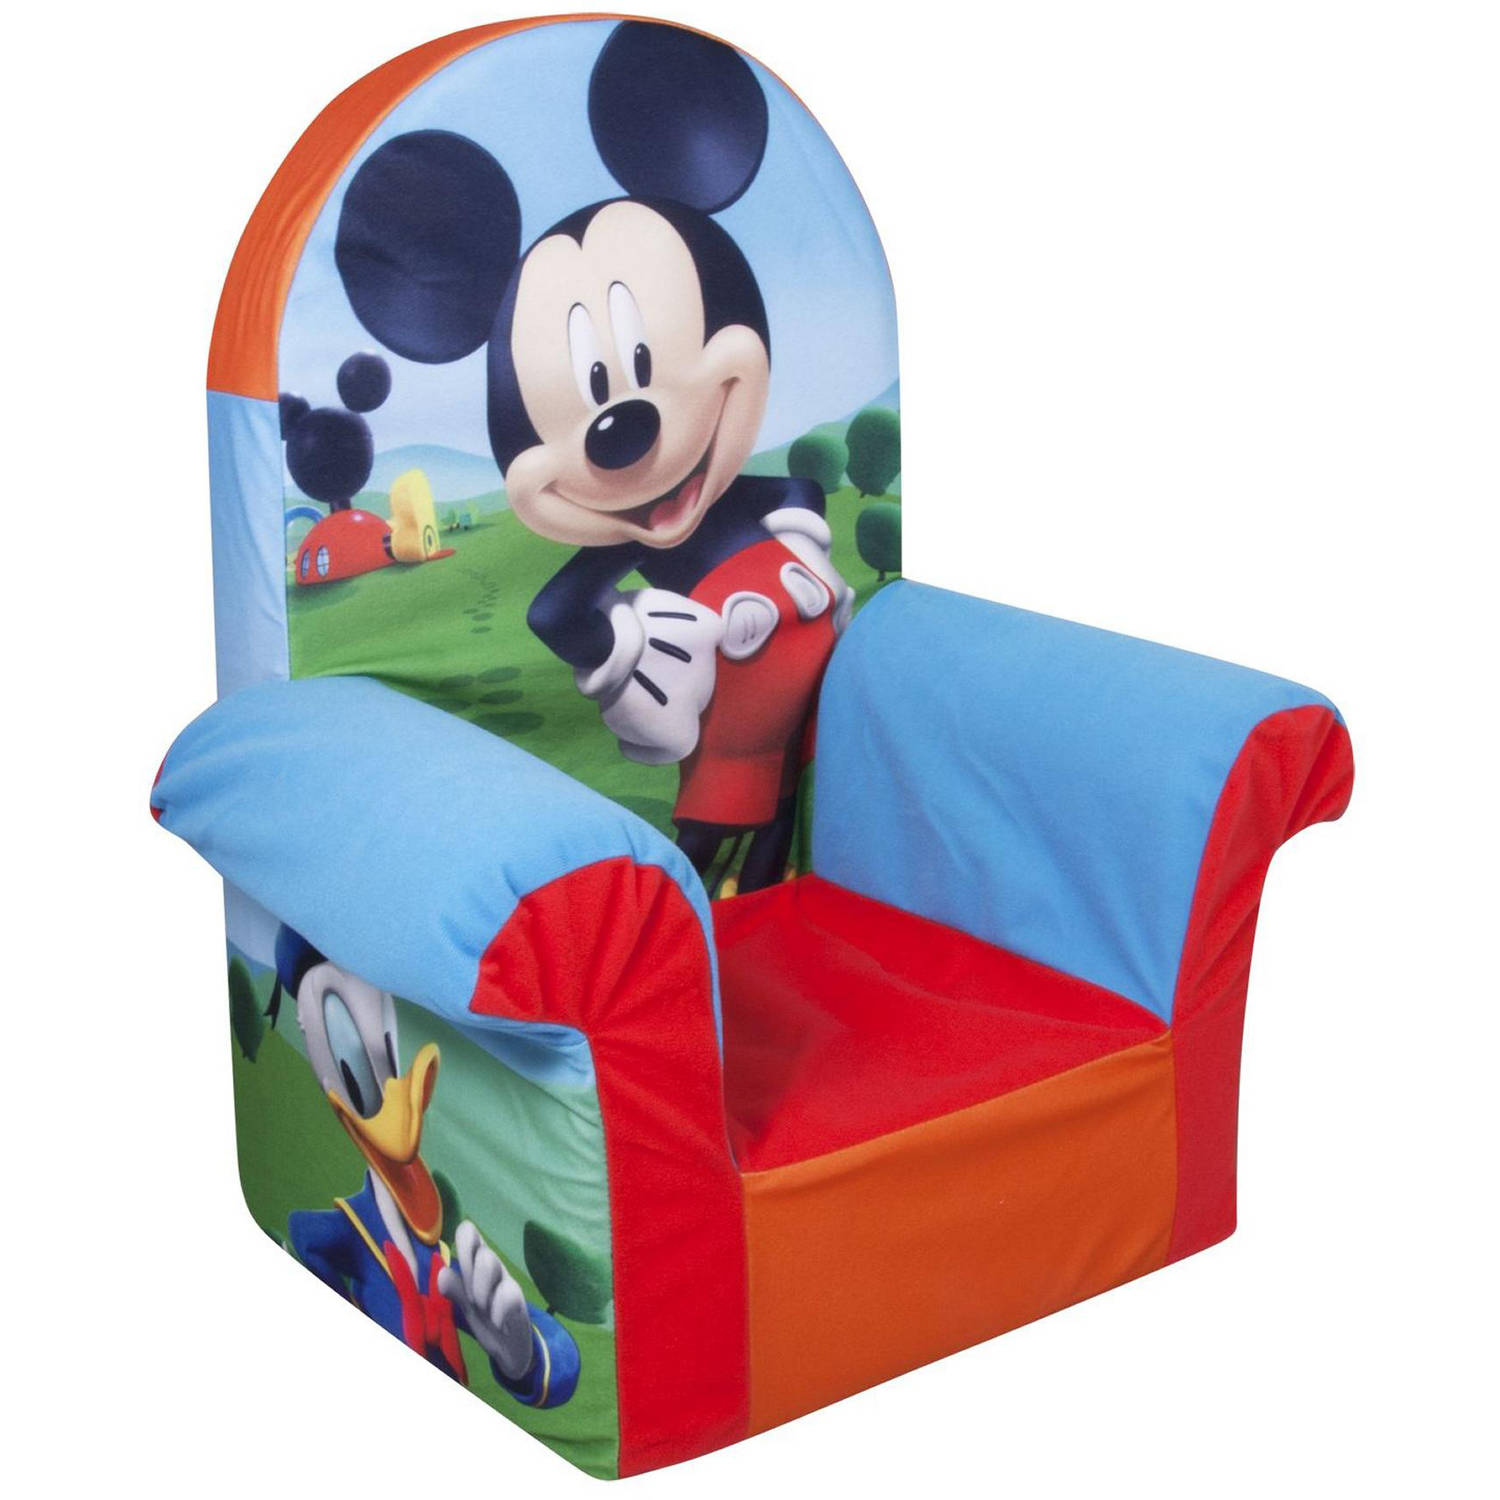 Marshmallow High Back Chair, Disney Mickey Mouse Club House